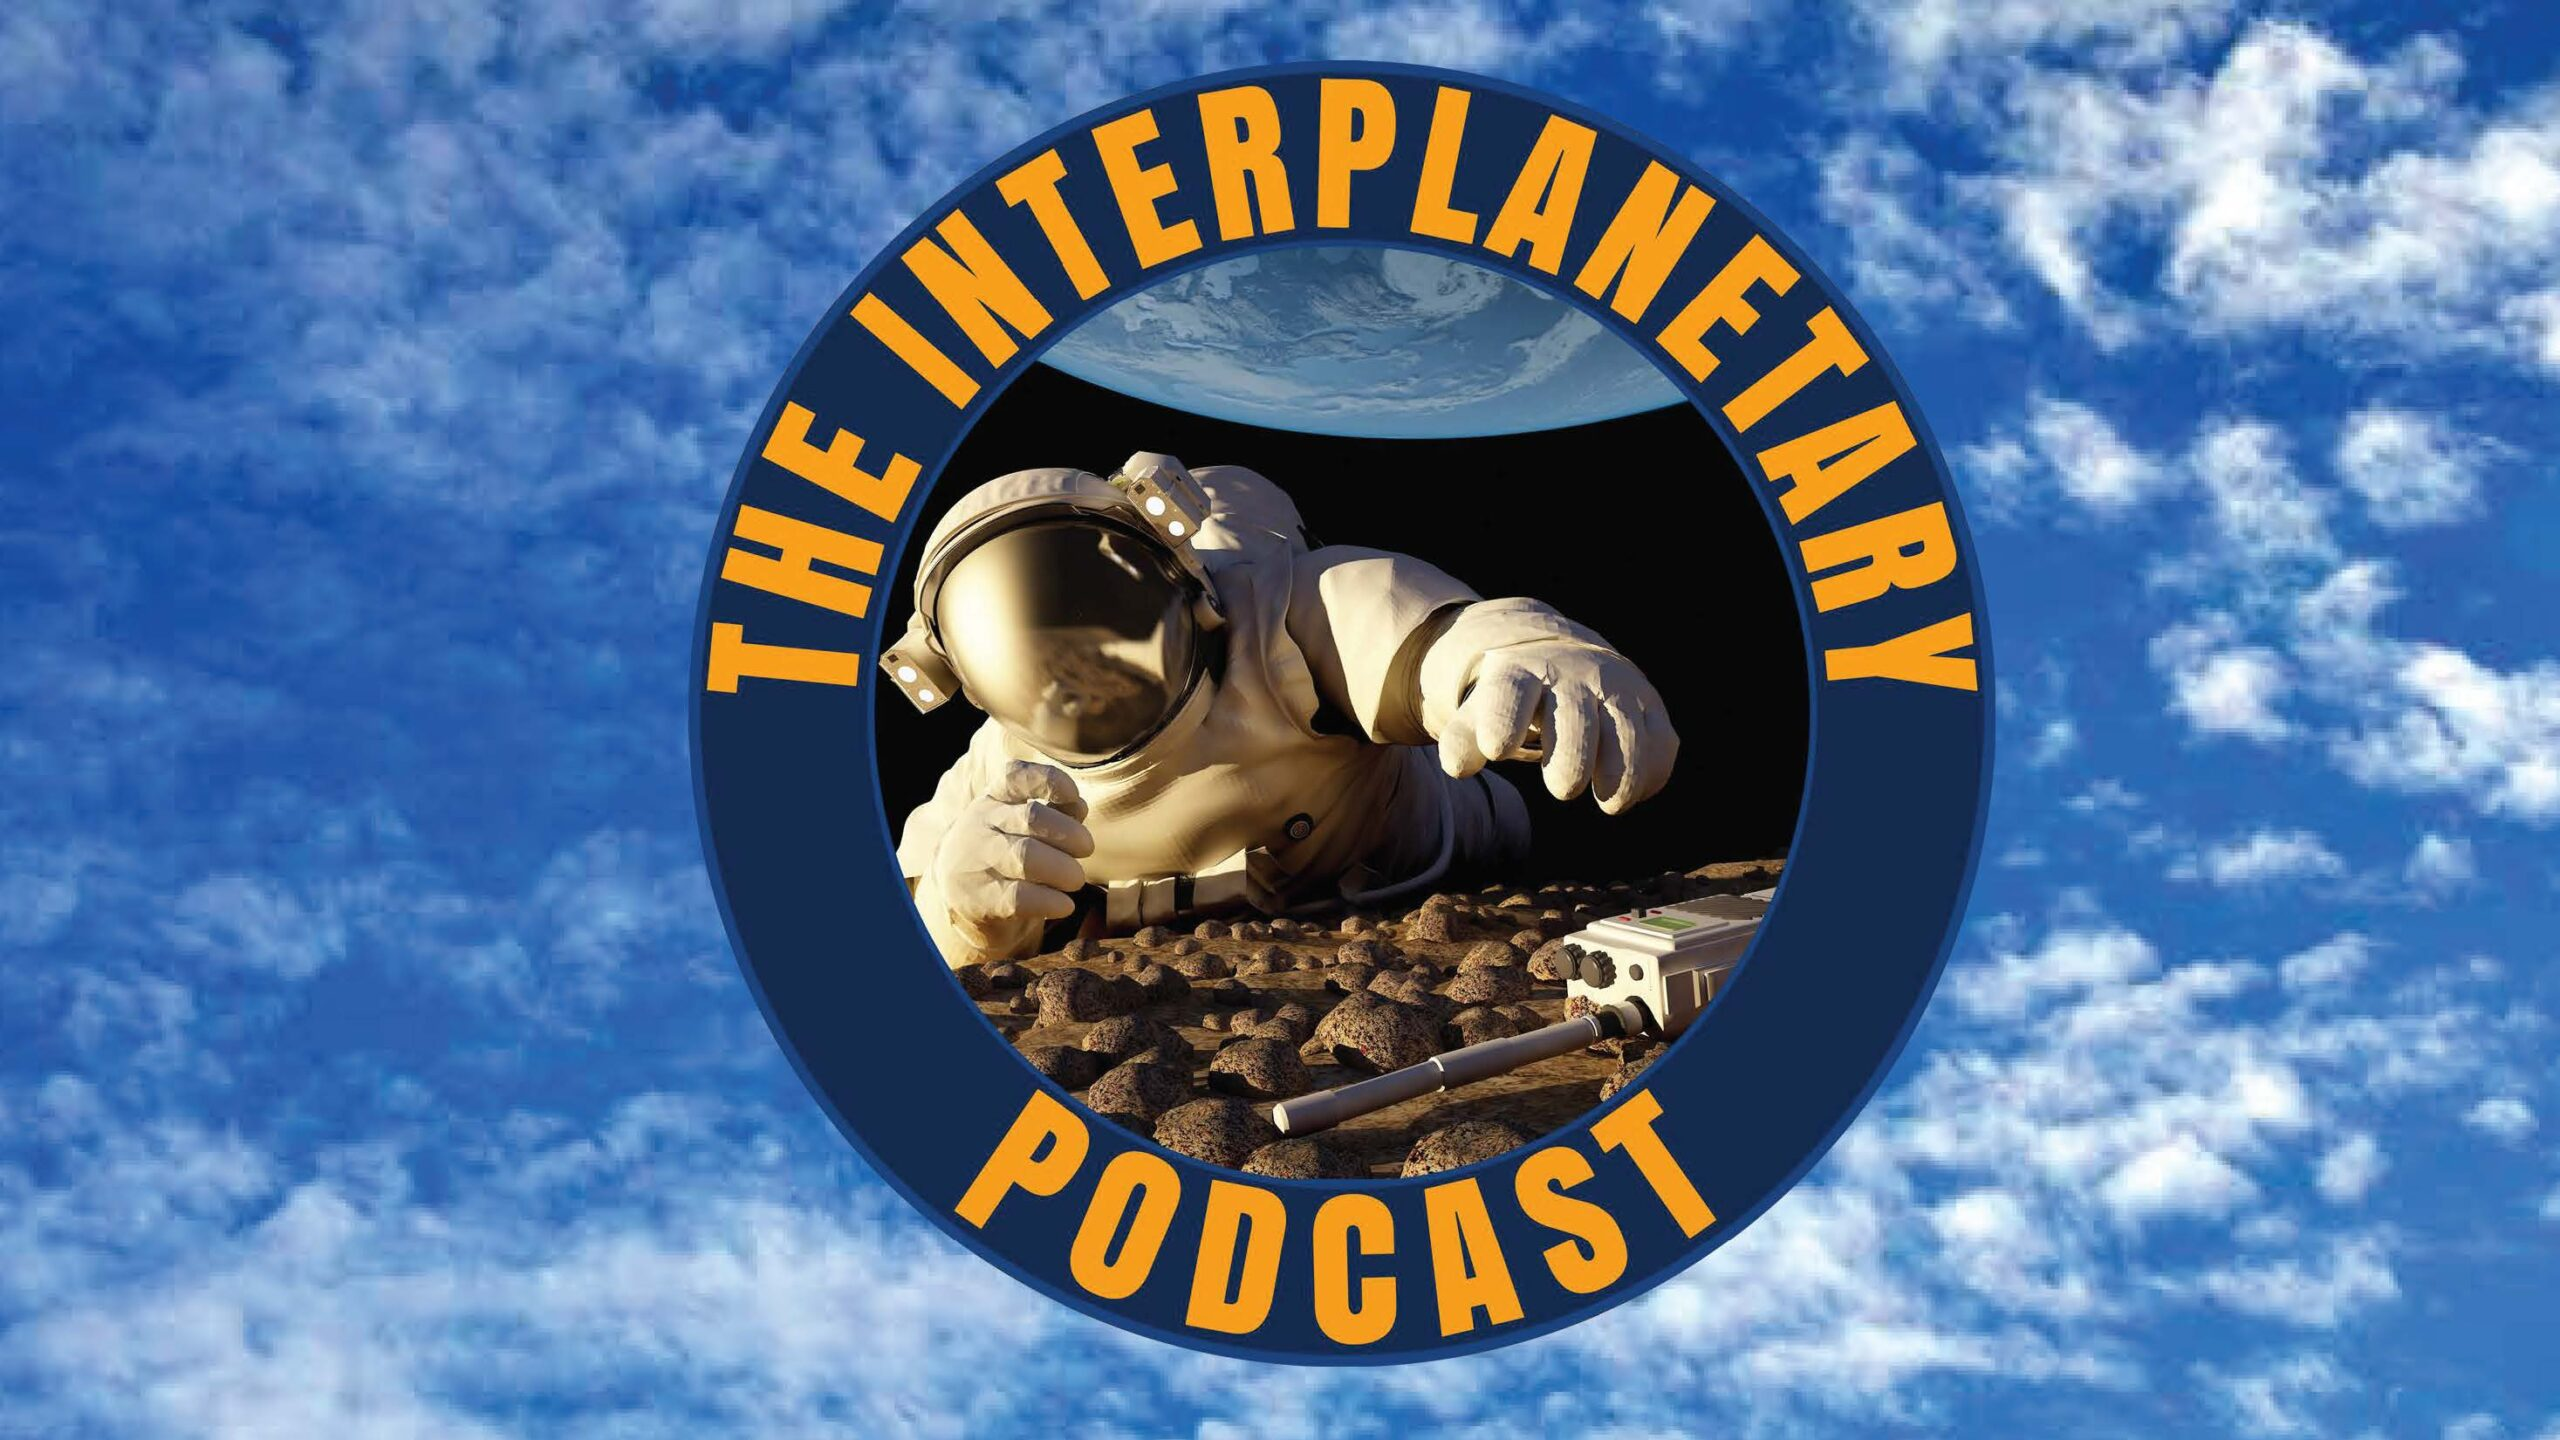 The Interplanetary Podcast Space Organisation Partner